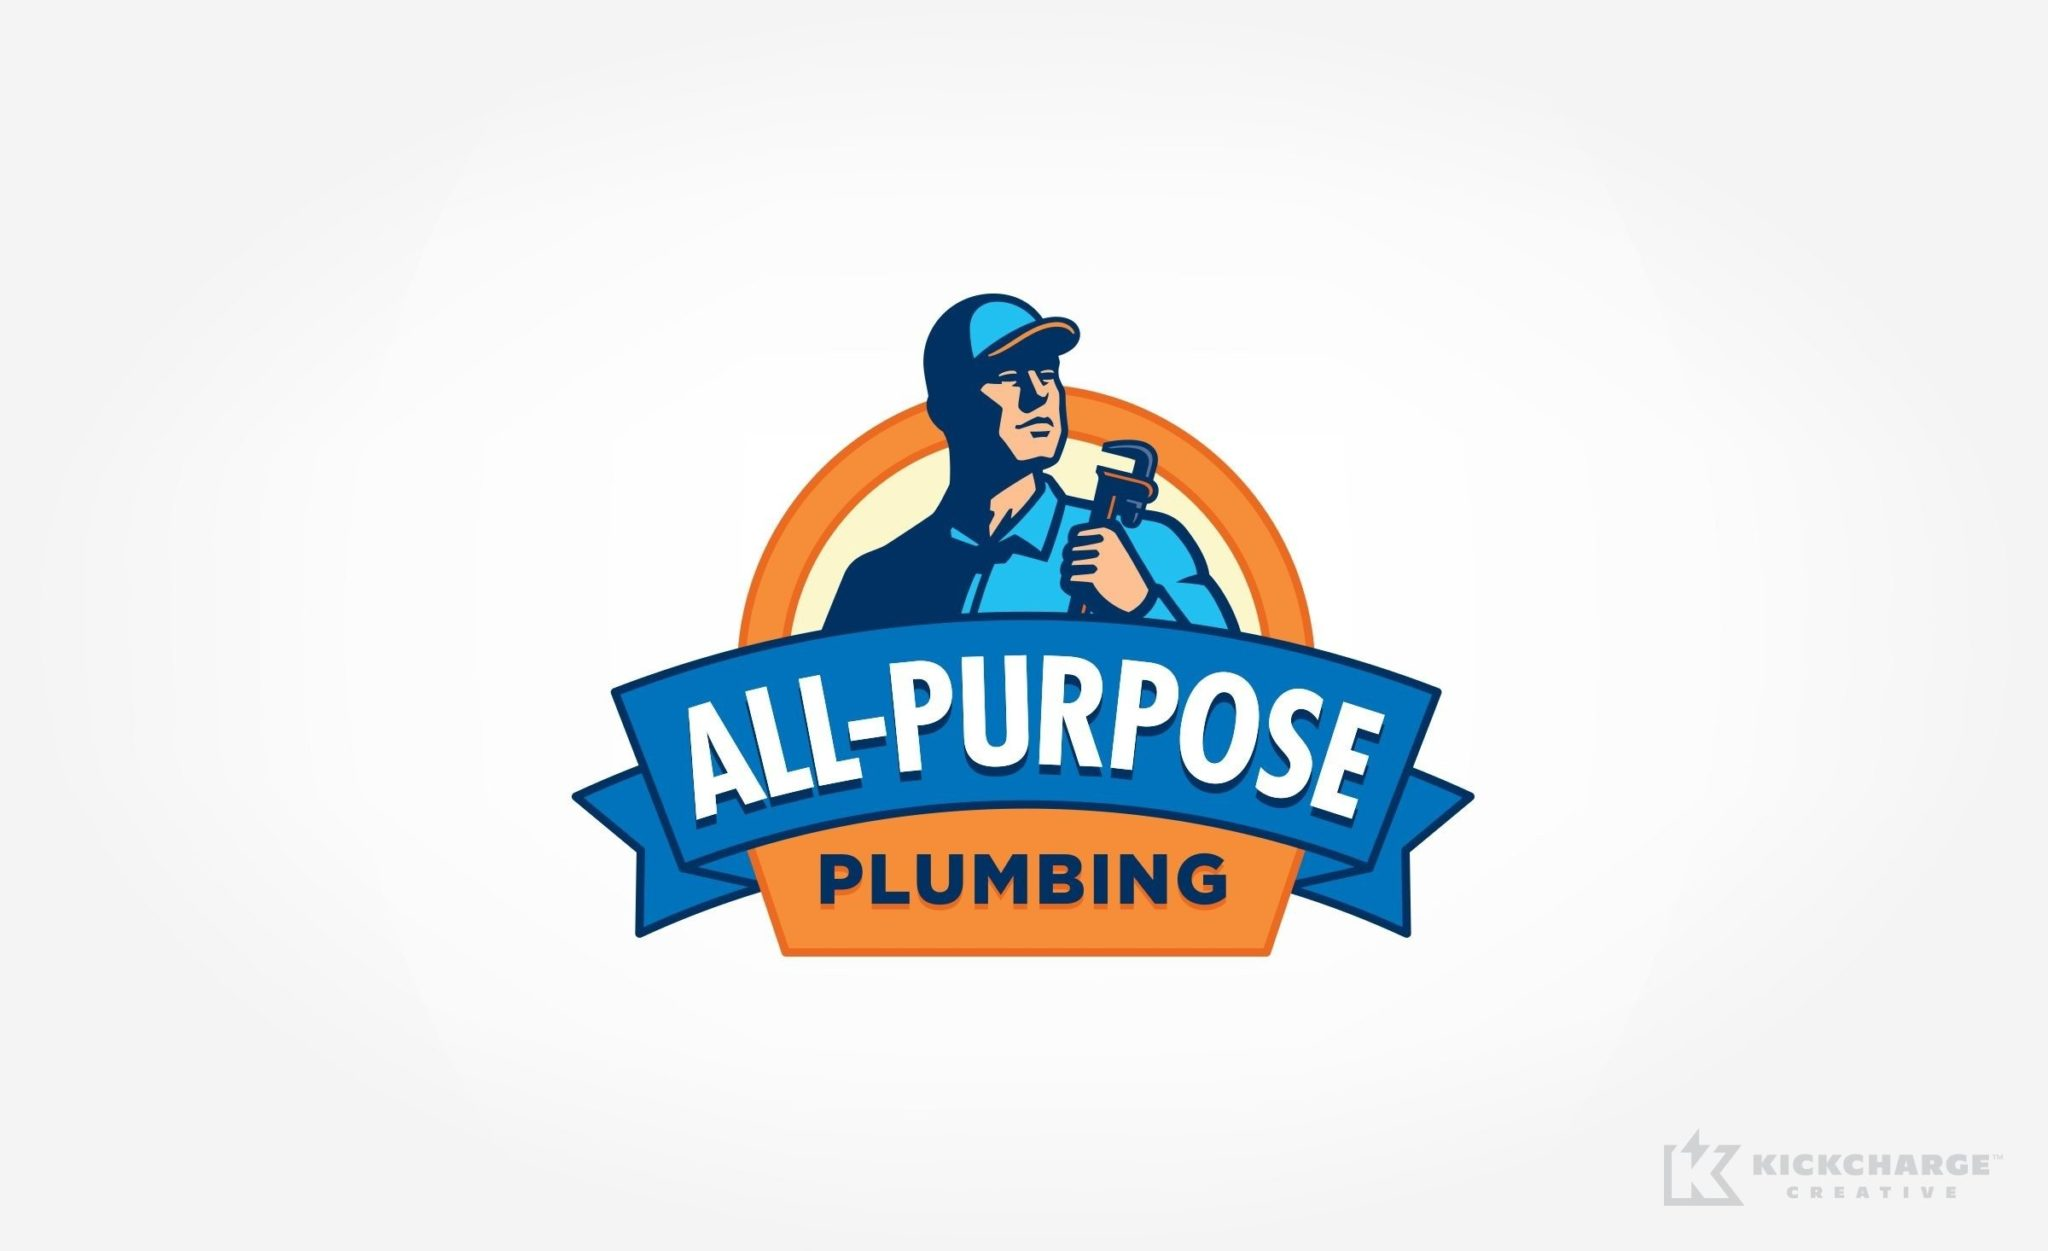 All-Purpose Plumbing